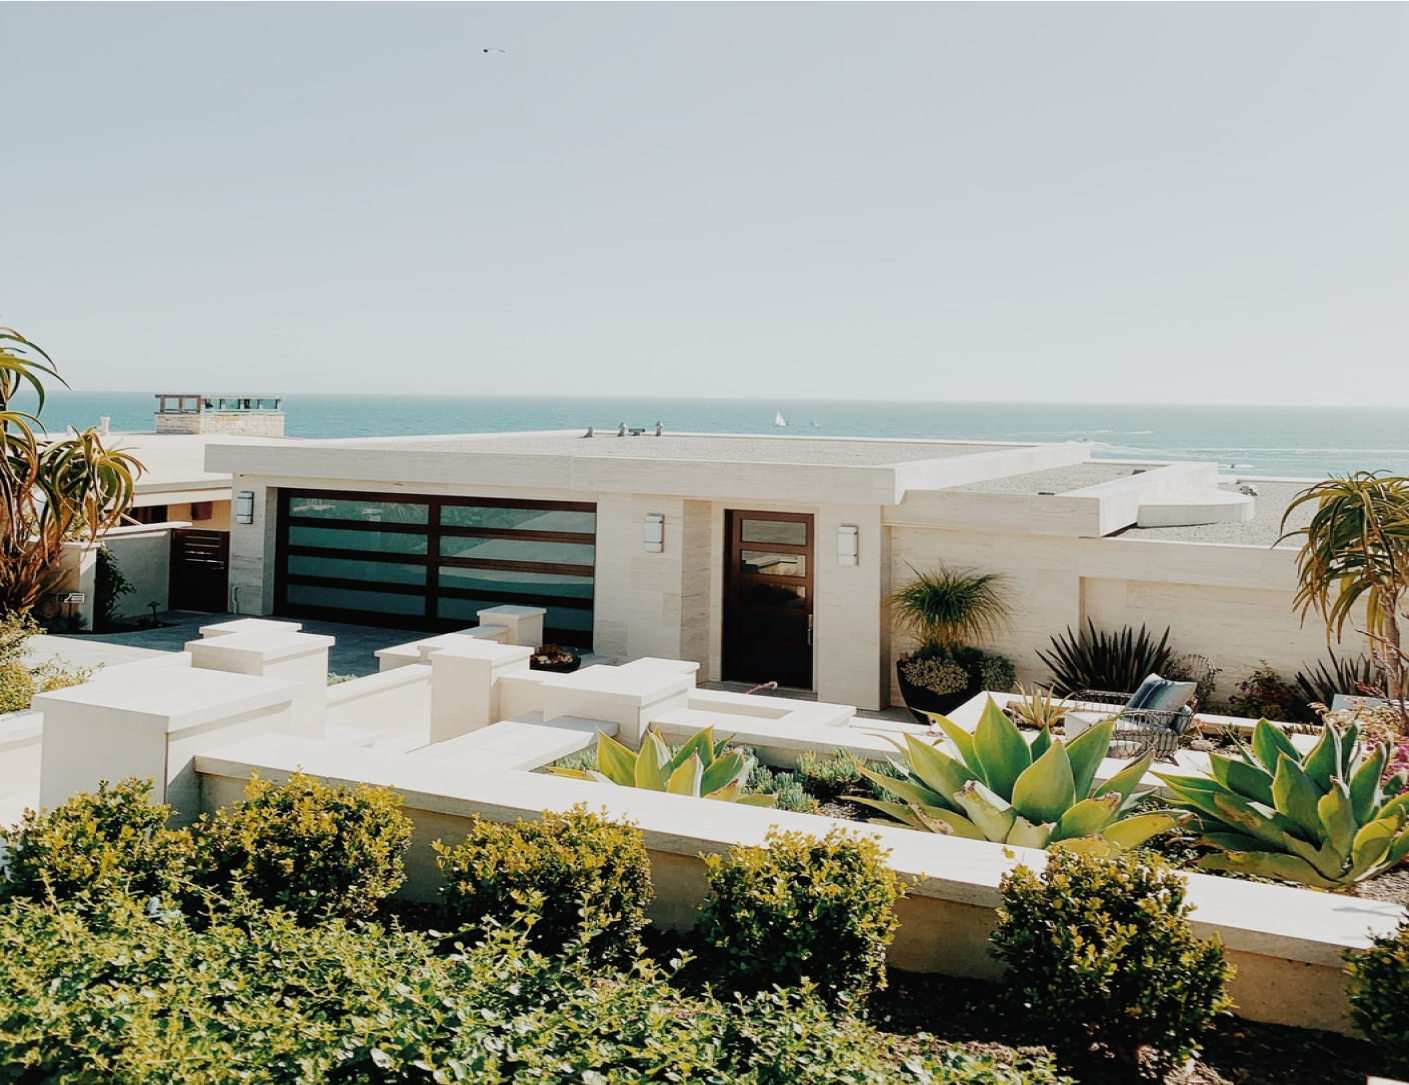 The exterior of a modern home in Orange County. The ocean is in the distance and the property has a number of coastal plants